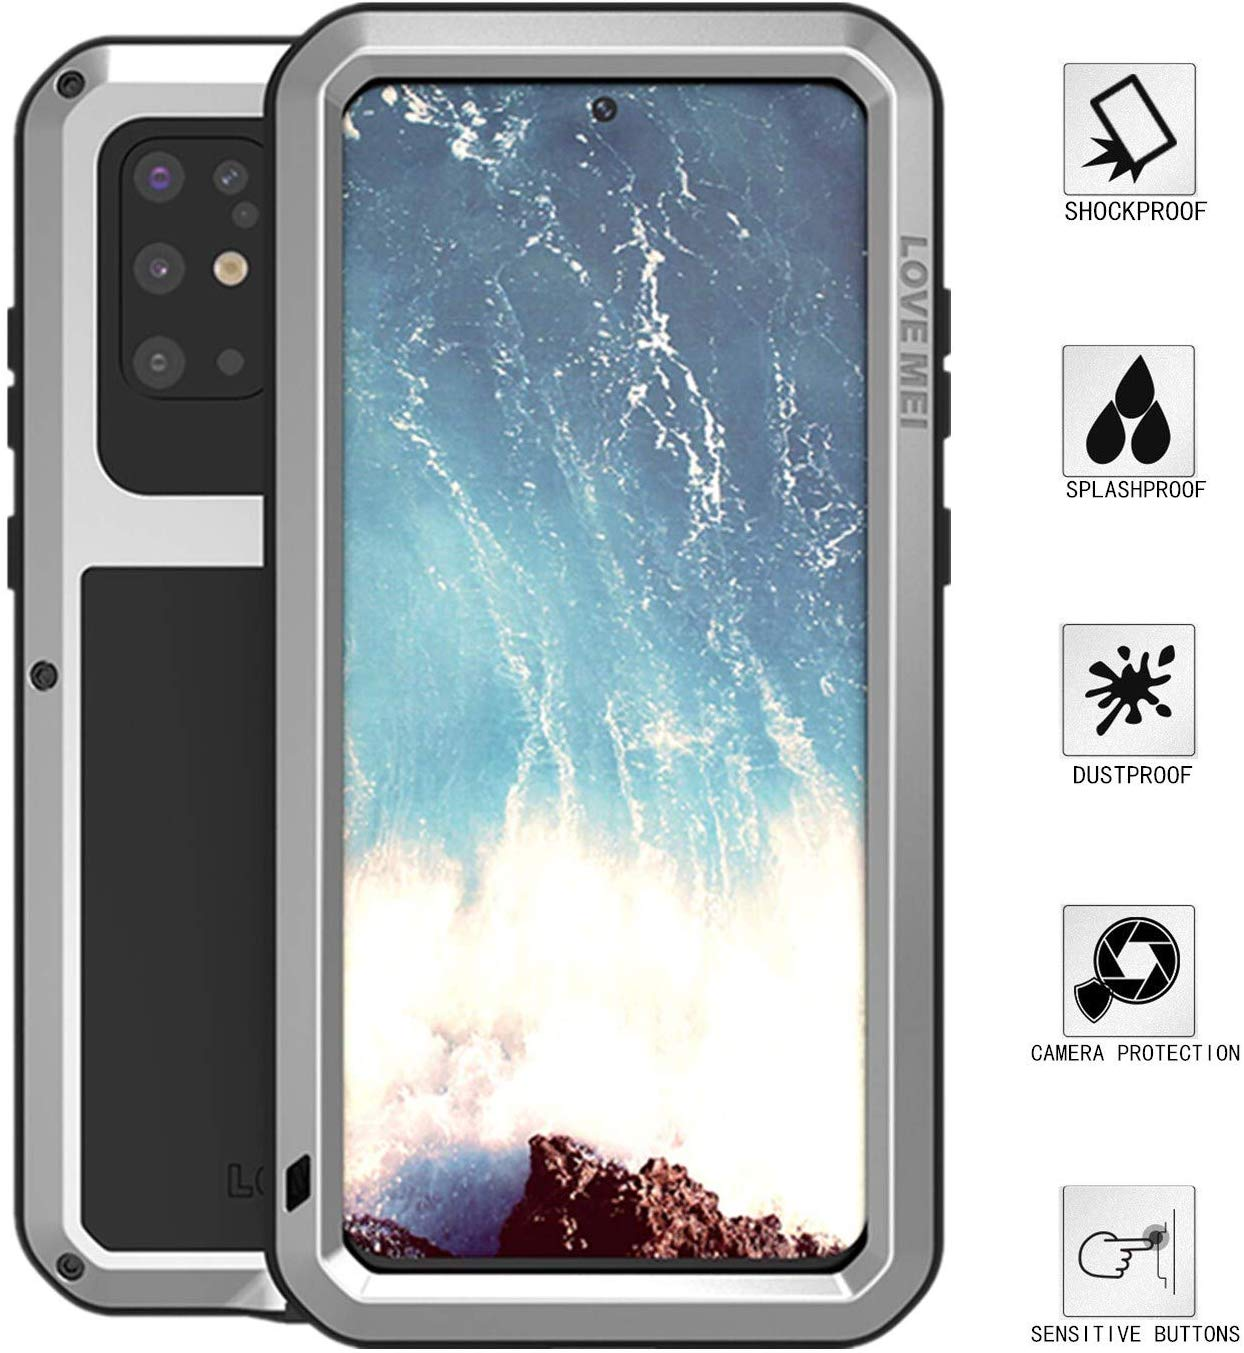 High Quality Aluminum Aluminum Metal Gorilla Glass Waterproof Shockproof Military Heavy Duty Sturdy Protector Cover Hard Case for Samsung Galaxy S20 Plus (Silver, S20 Plus)